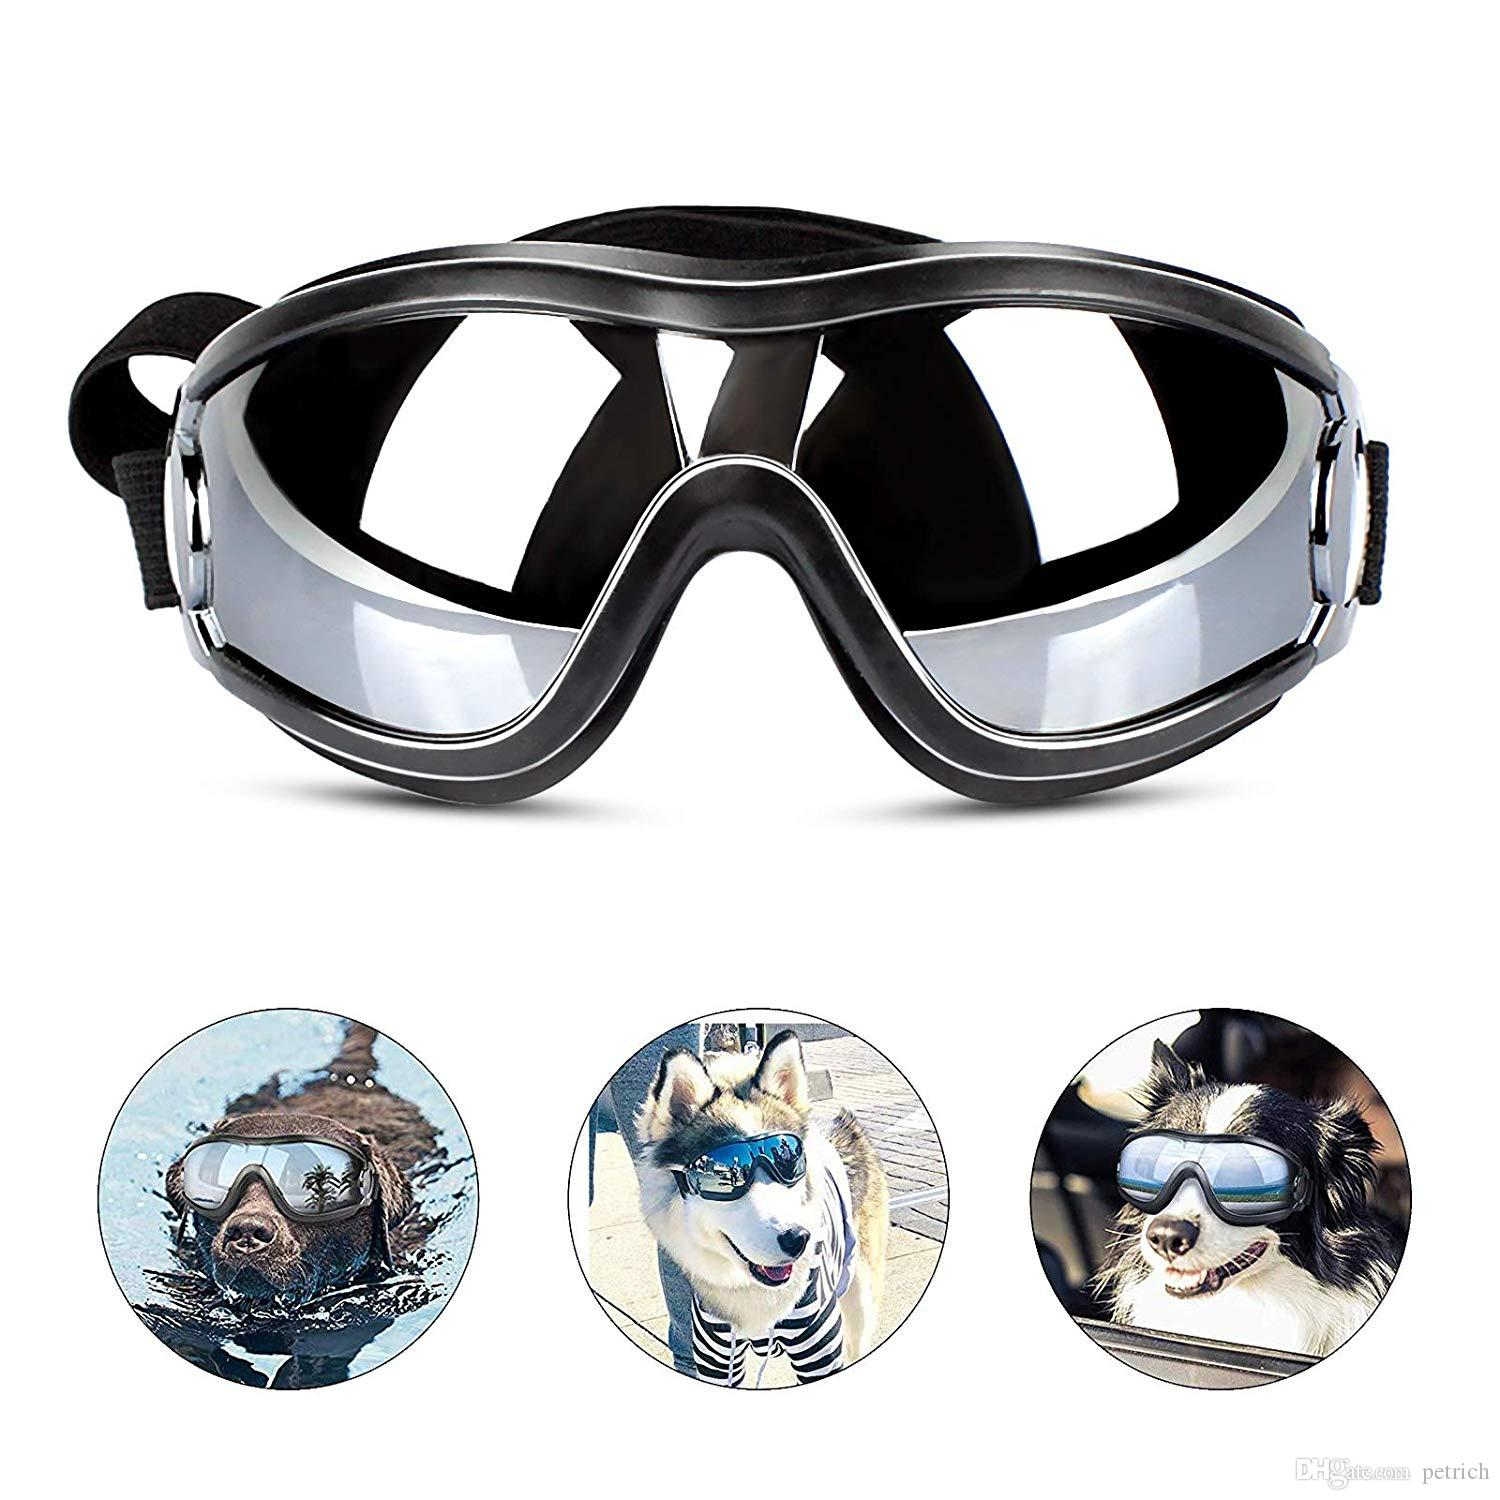 Dog Sunglasses Dog Goggles Adjustable Strap for Travel Skiing and Anti-Fog Snow Goggles Pet Goggles for Medium to Large